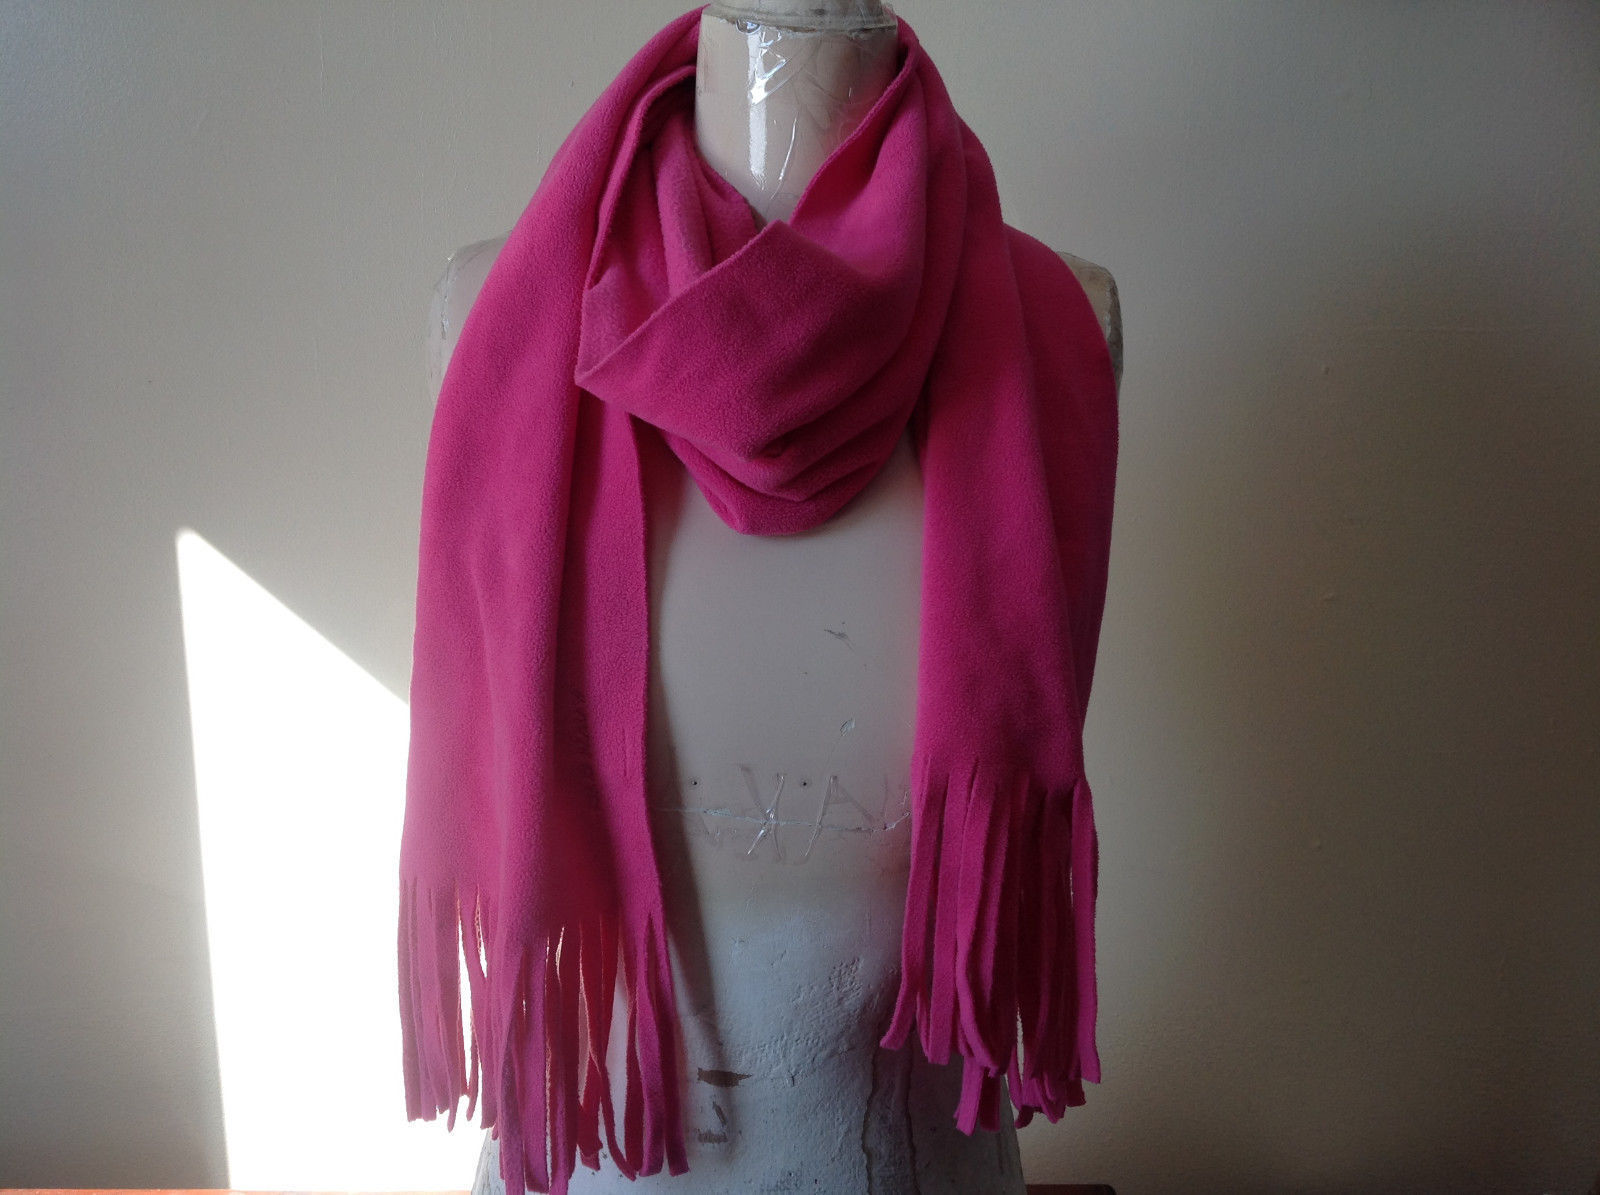 Old Navy Pretty Pink Tassle Fleece Scarf 68 Inches in Length